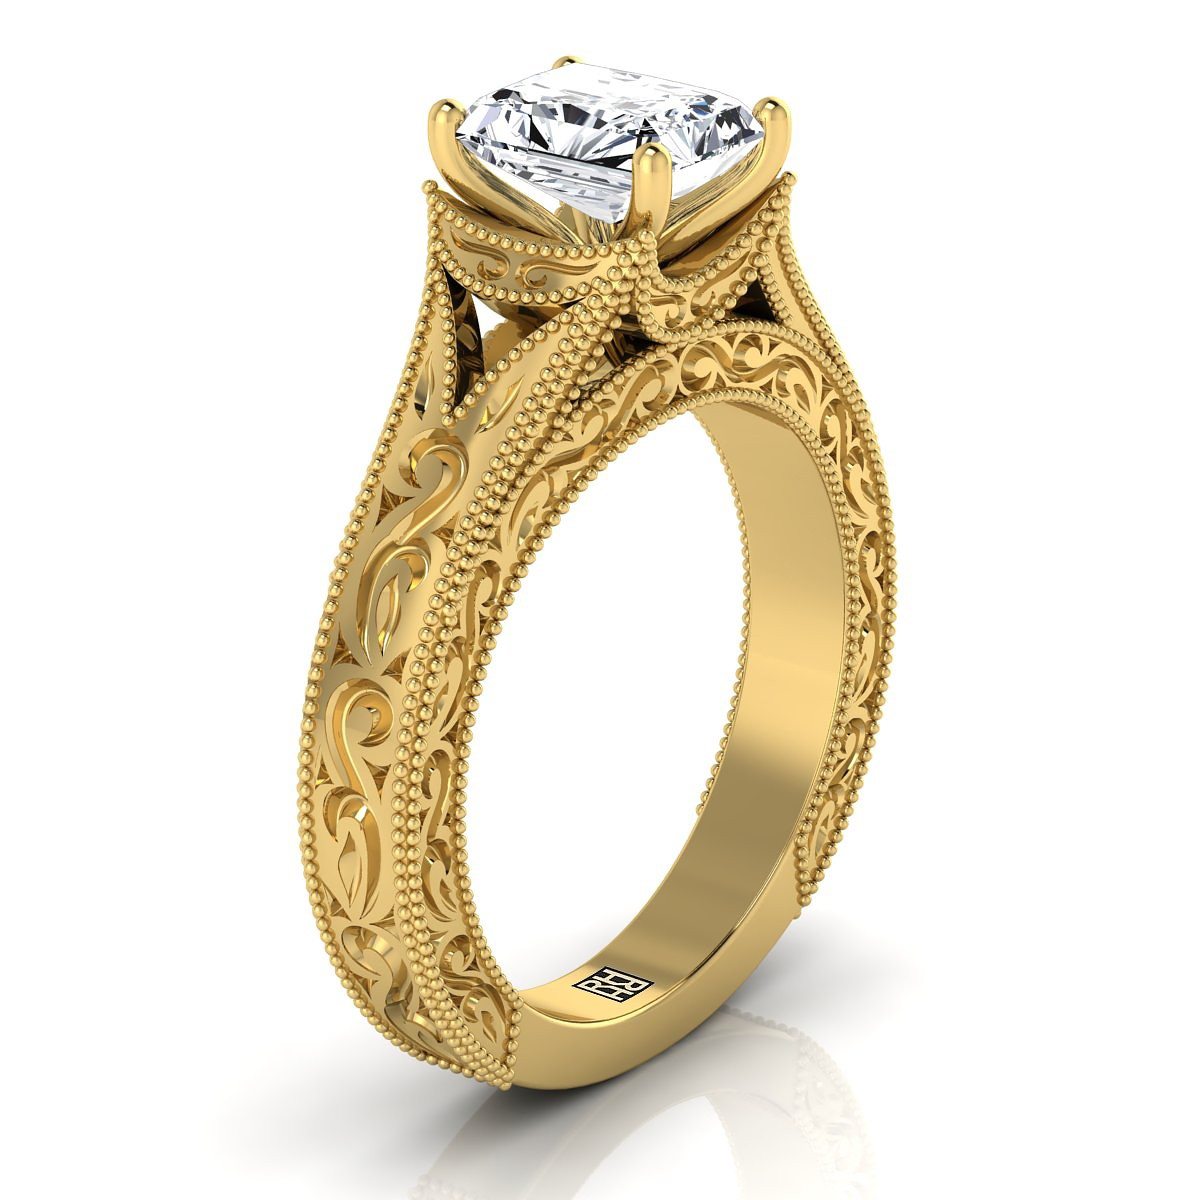 Radiant Cut Antique Inspired Engraved Diamond Engagement Ring With Millgrain Finish In 14k Yellow Gold